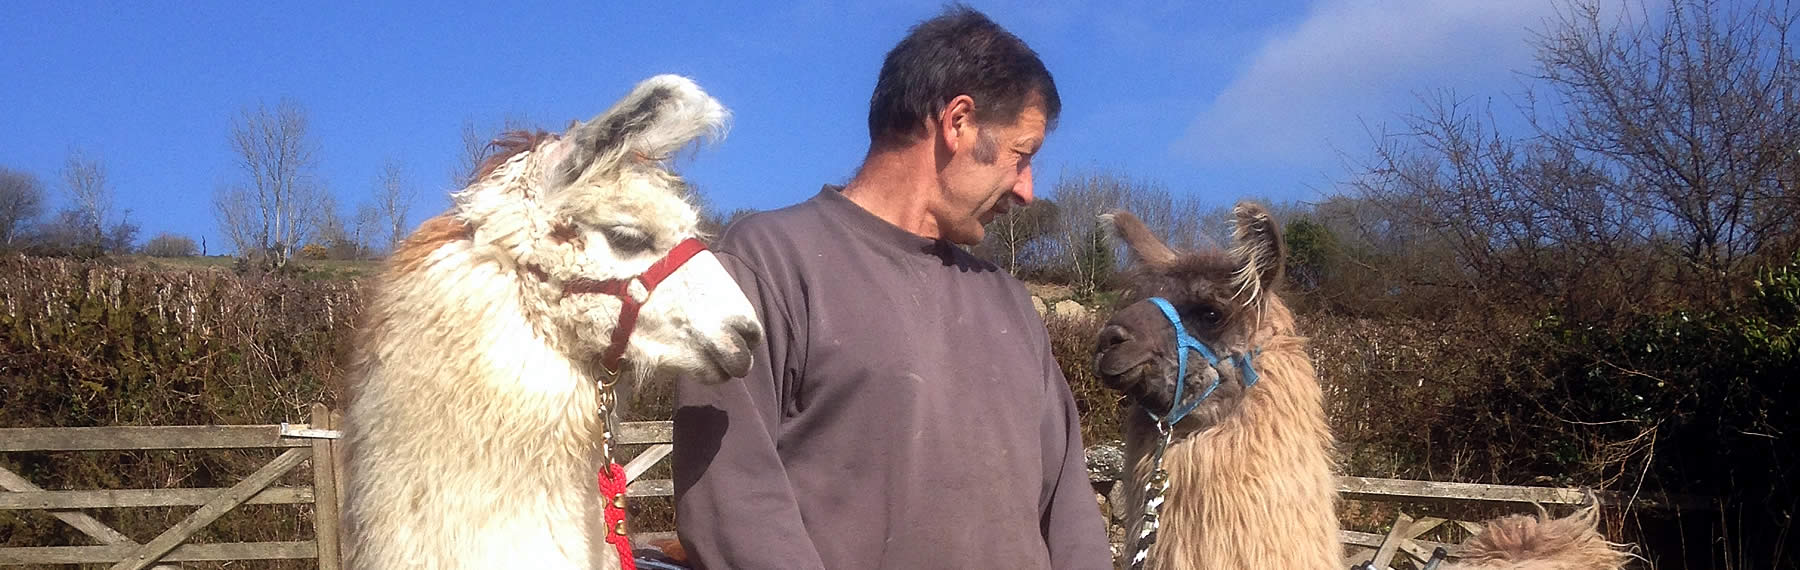 Newcott Farm Breeders of Llamas and Alpacas